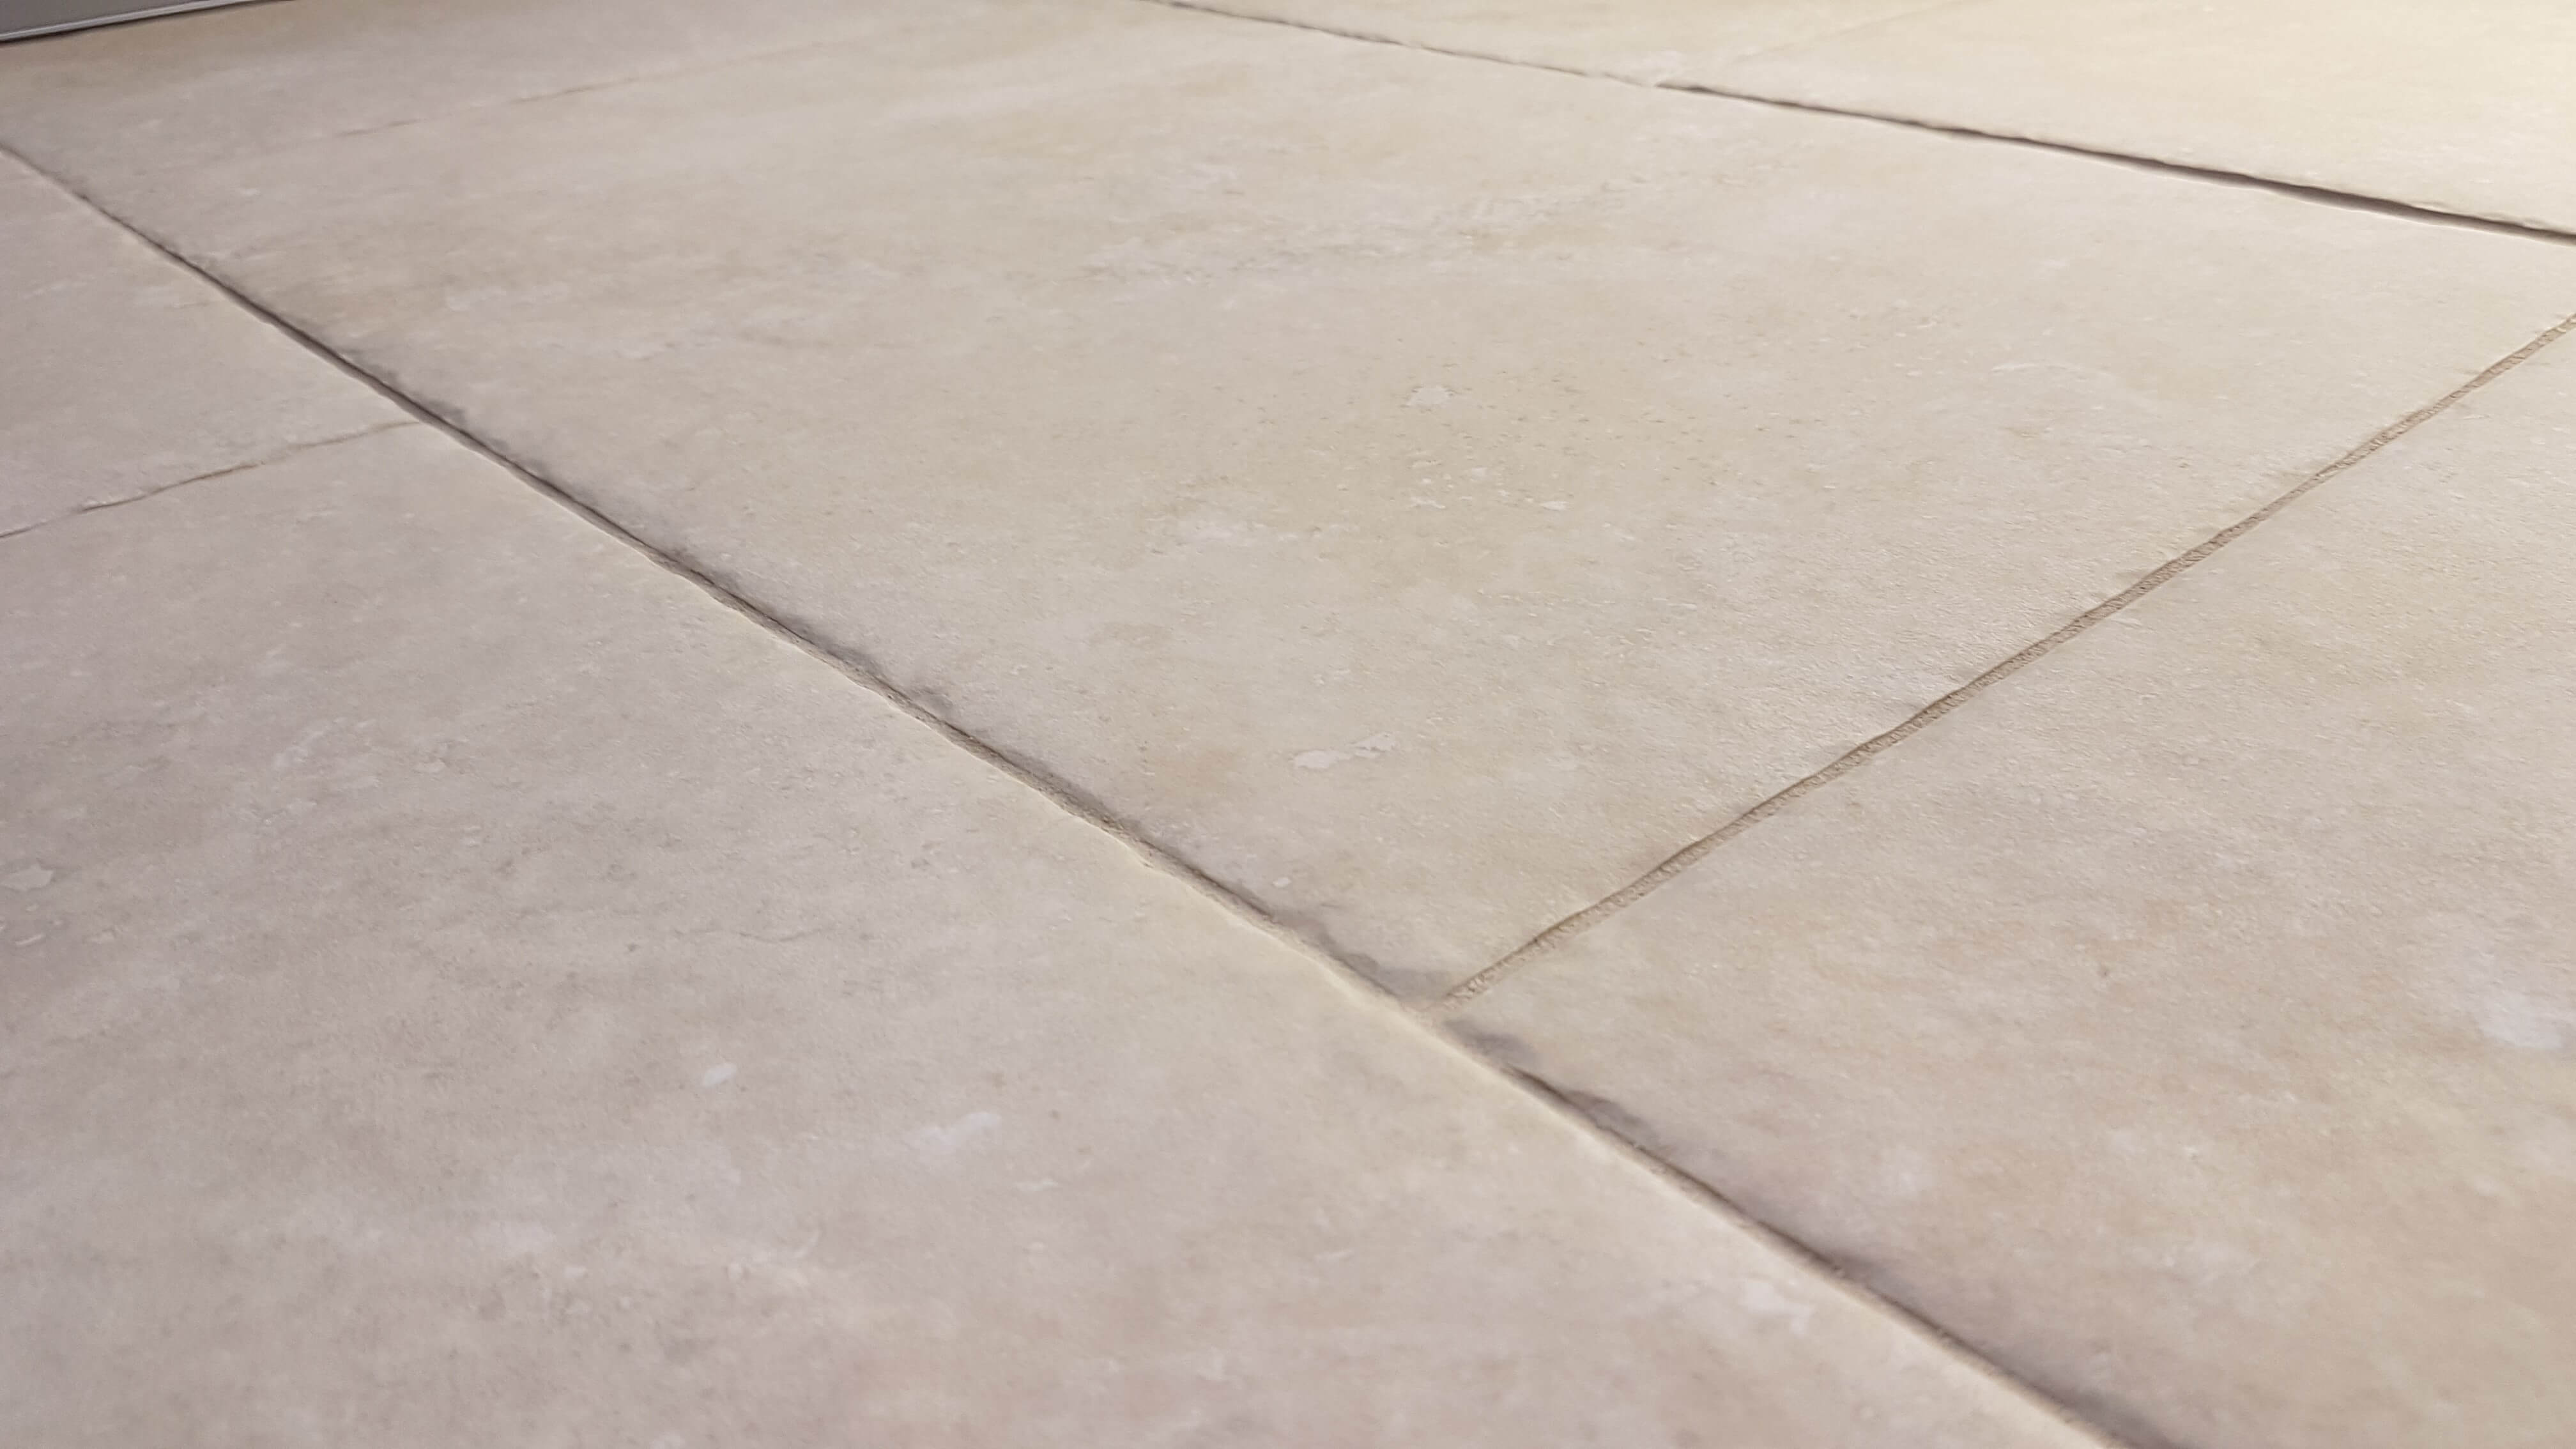 Stone and tile floor cleaning in doncaster carpet cleaners doncaster stone and tile floor cleaning in doncaster dailygadgetfo Image collections